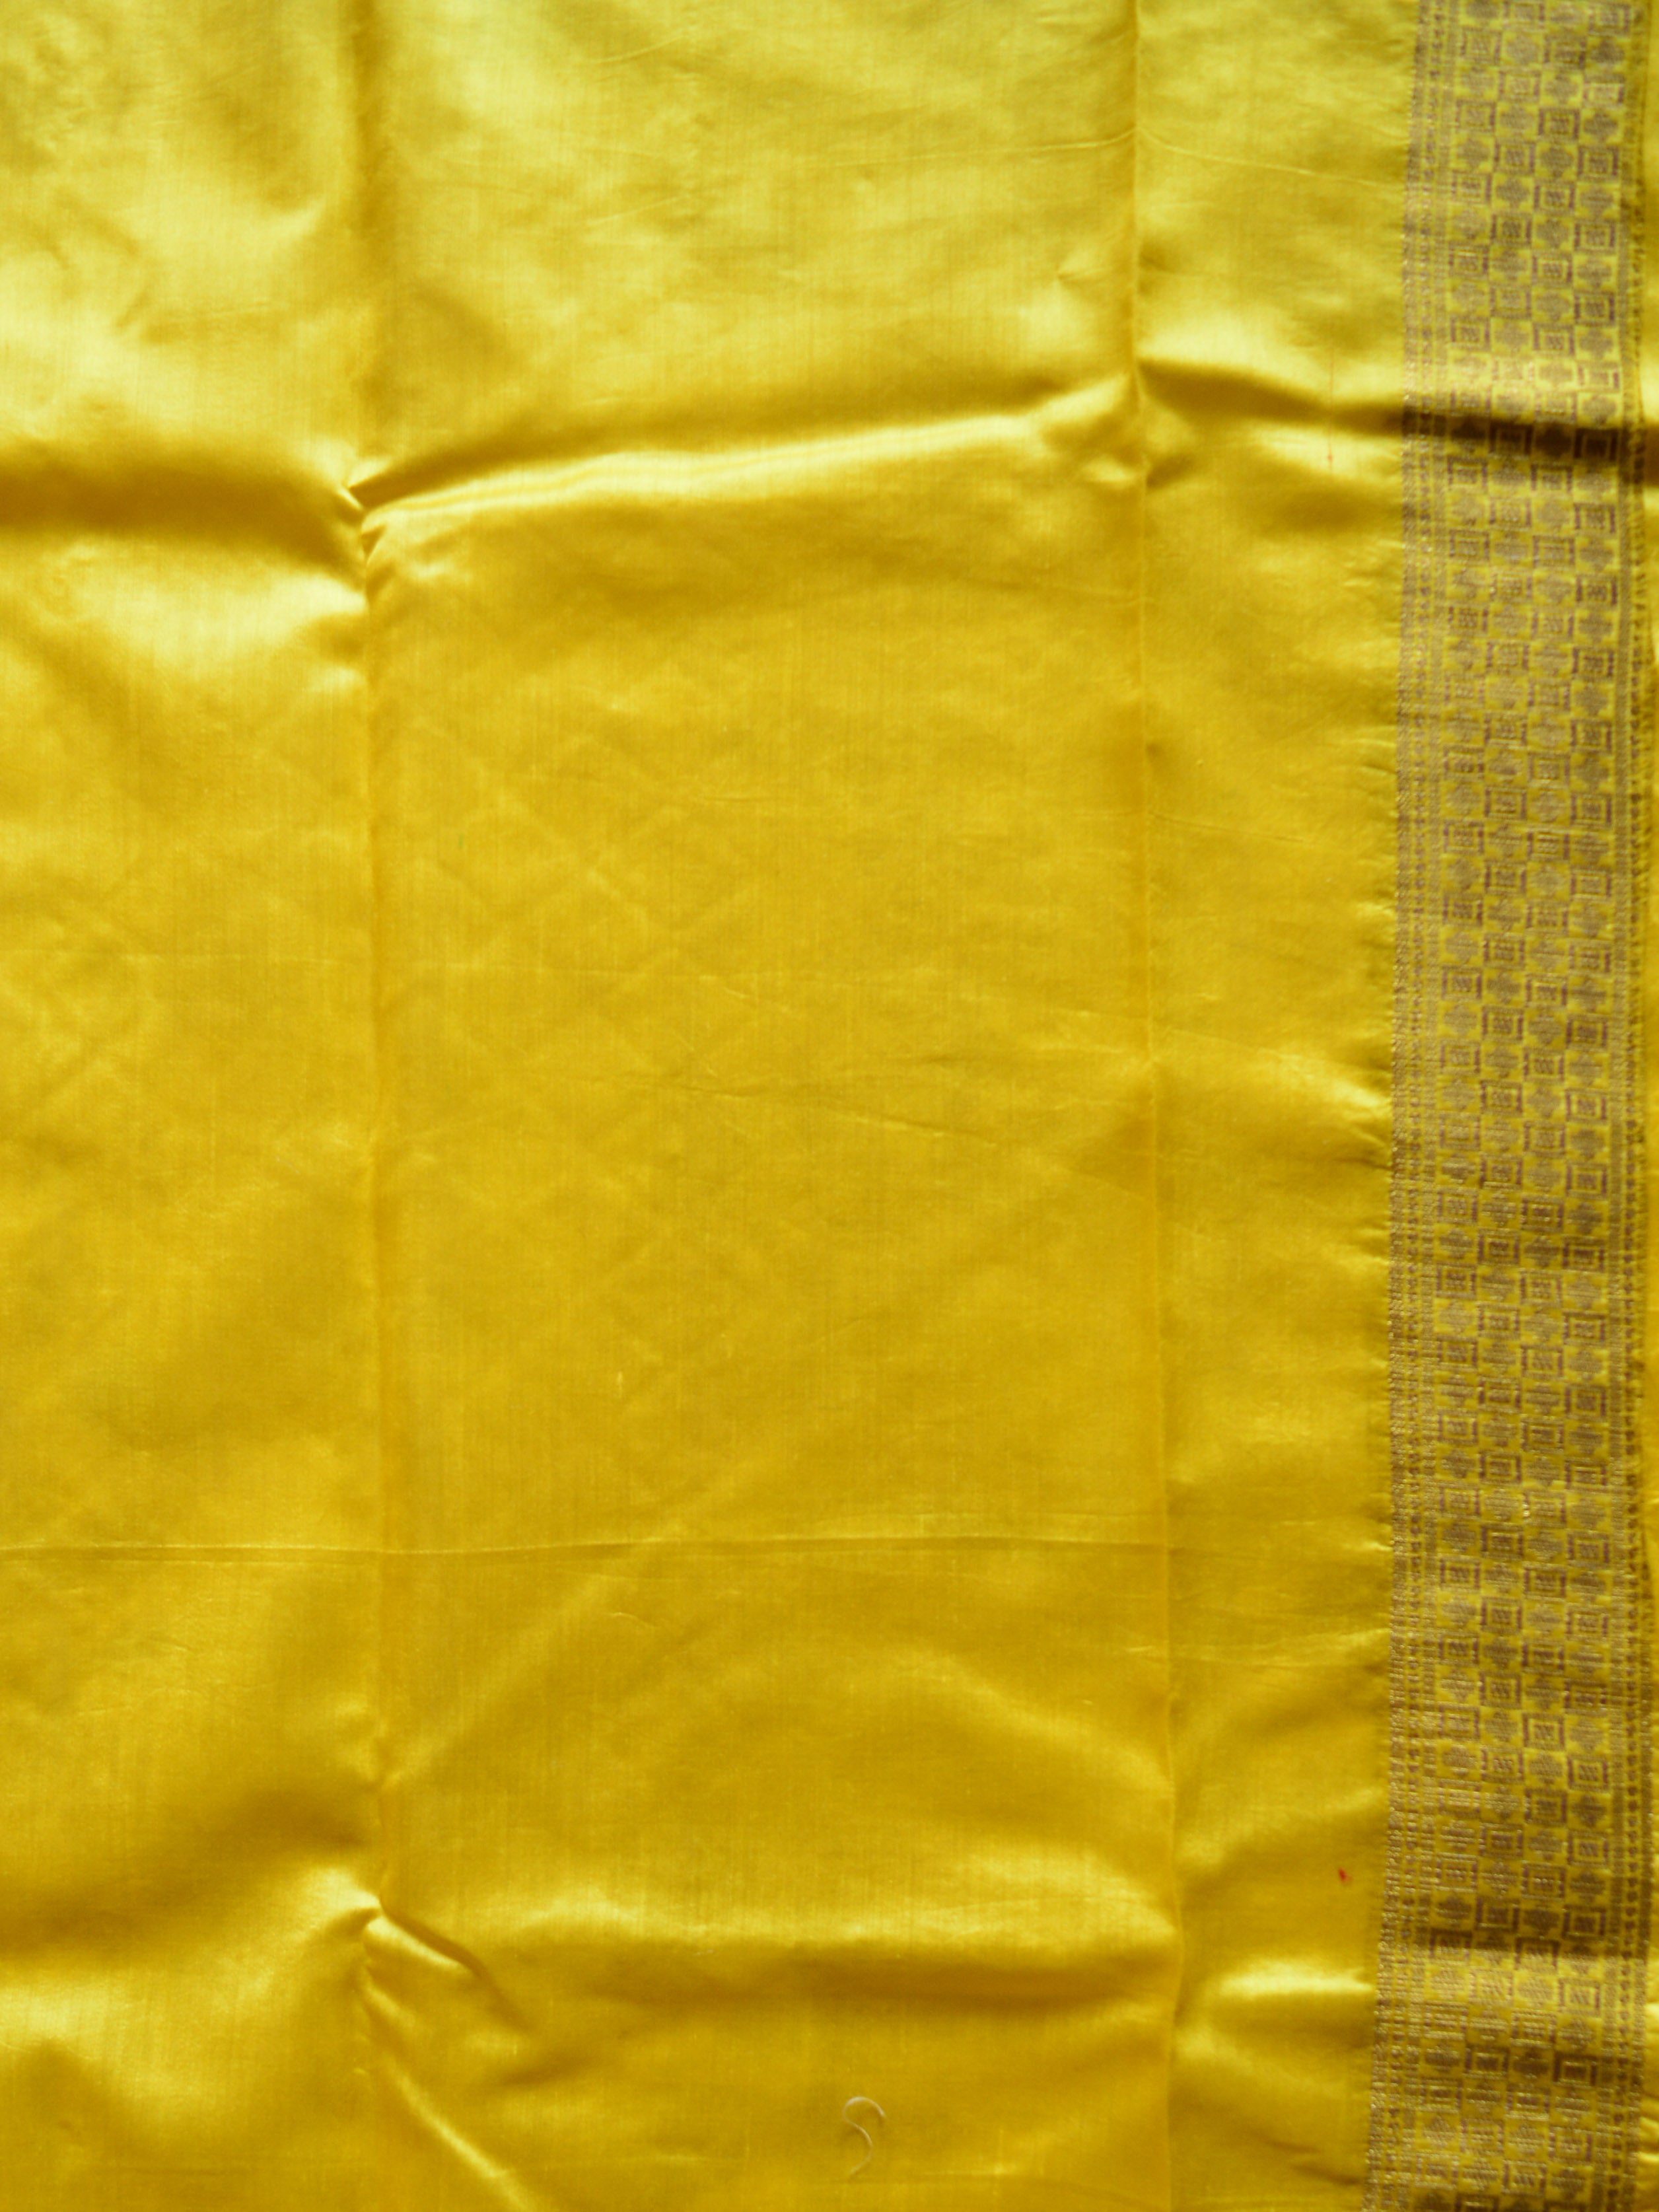 Banarasee Handloom Pure Dupion Silk Saree With Yellow Border & Pallu-Ivory White